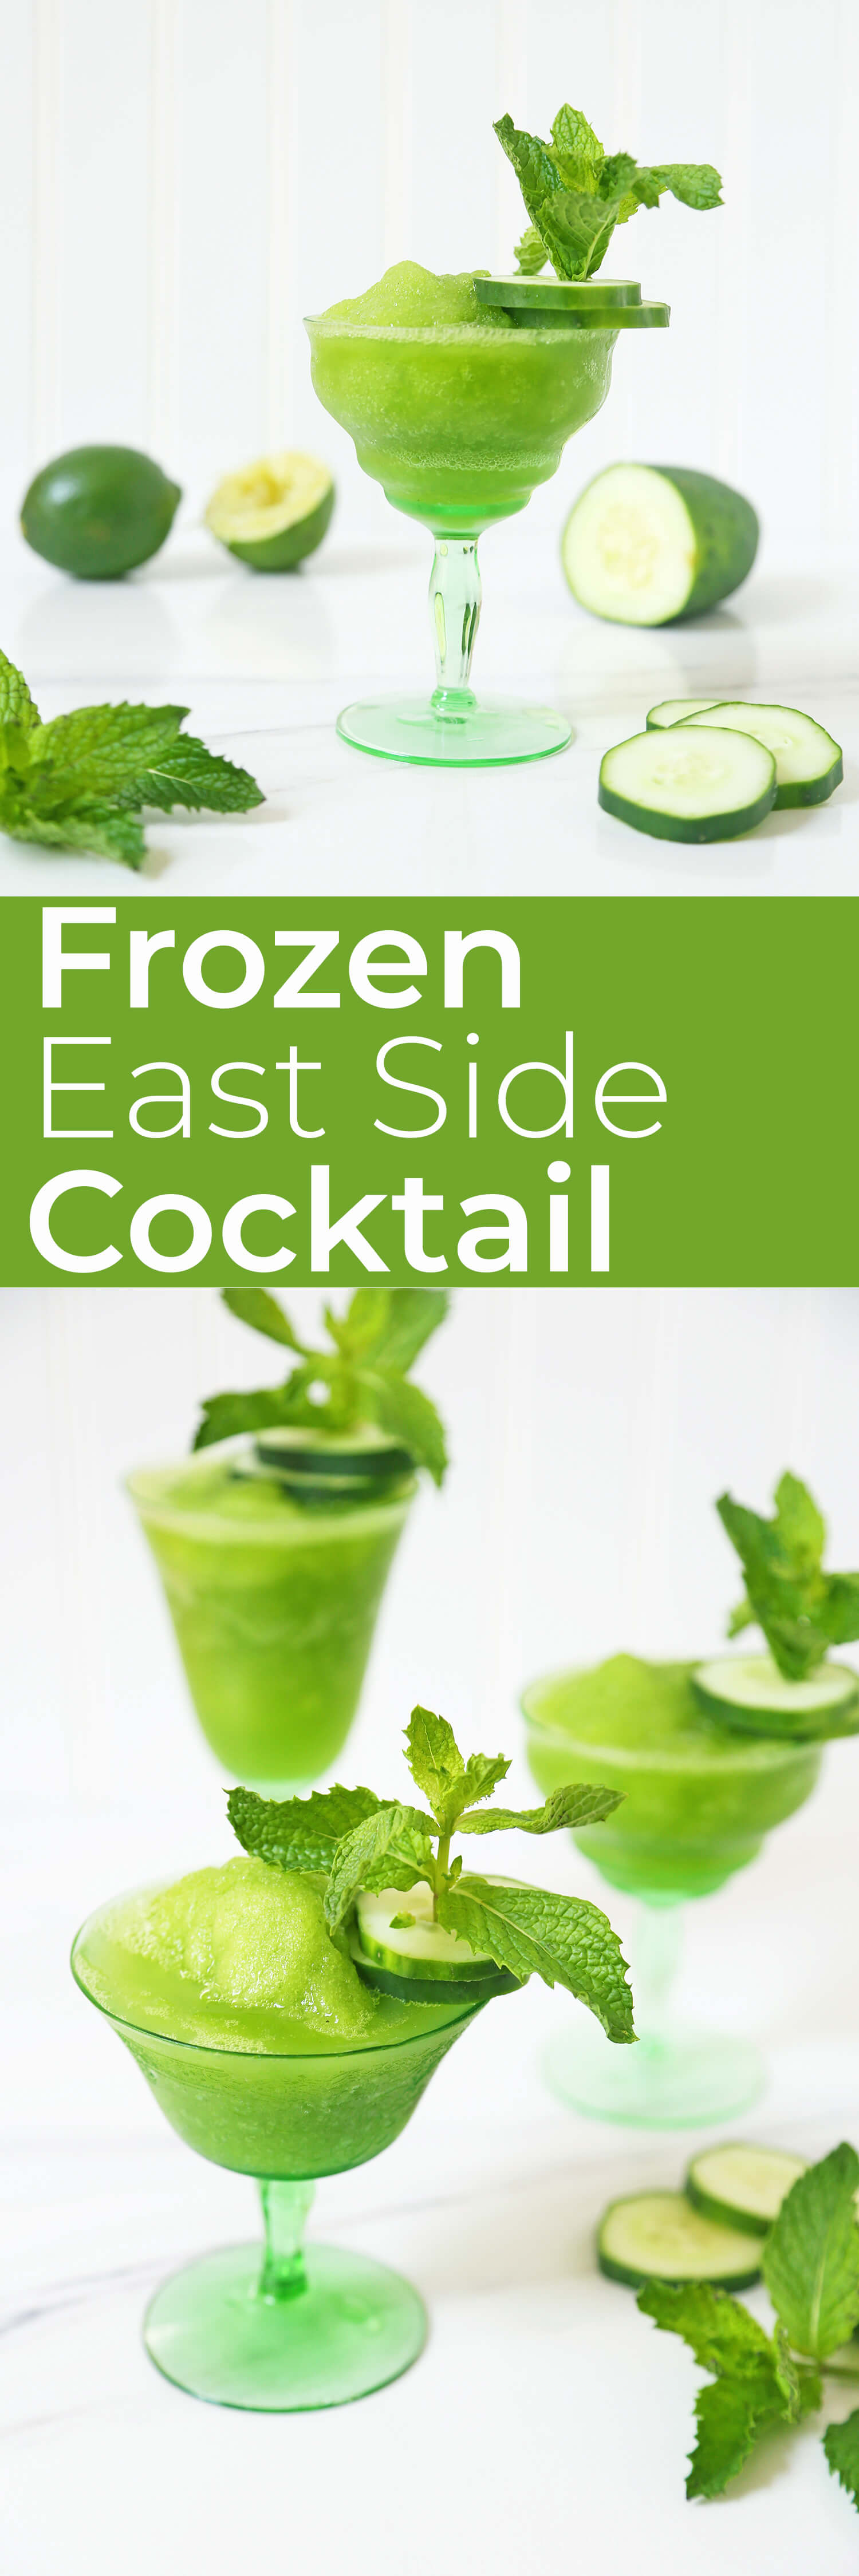 Cool off with the Frozen East Side Cocktail